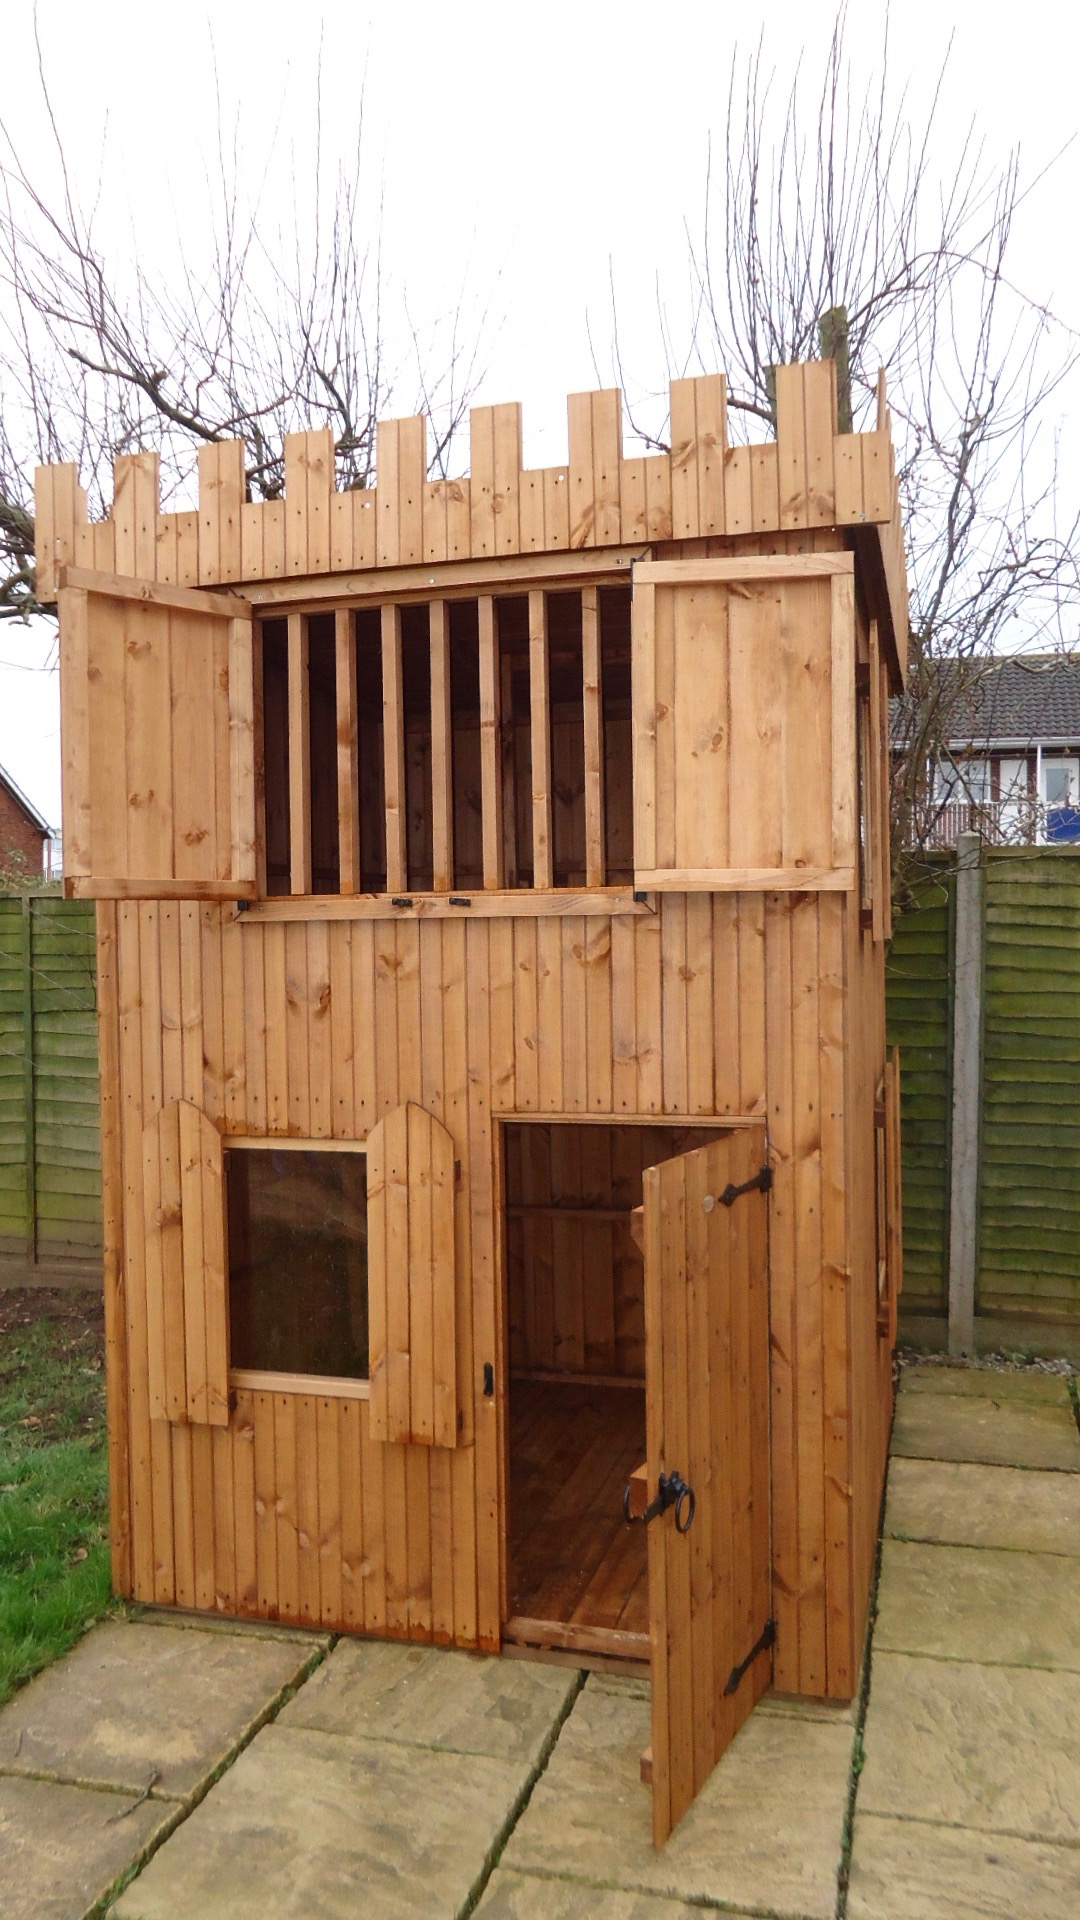 Castle Kids Wooden Garden Playhouse Shed